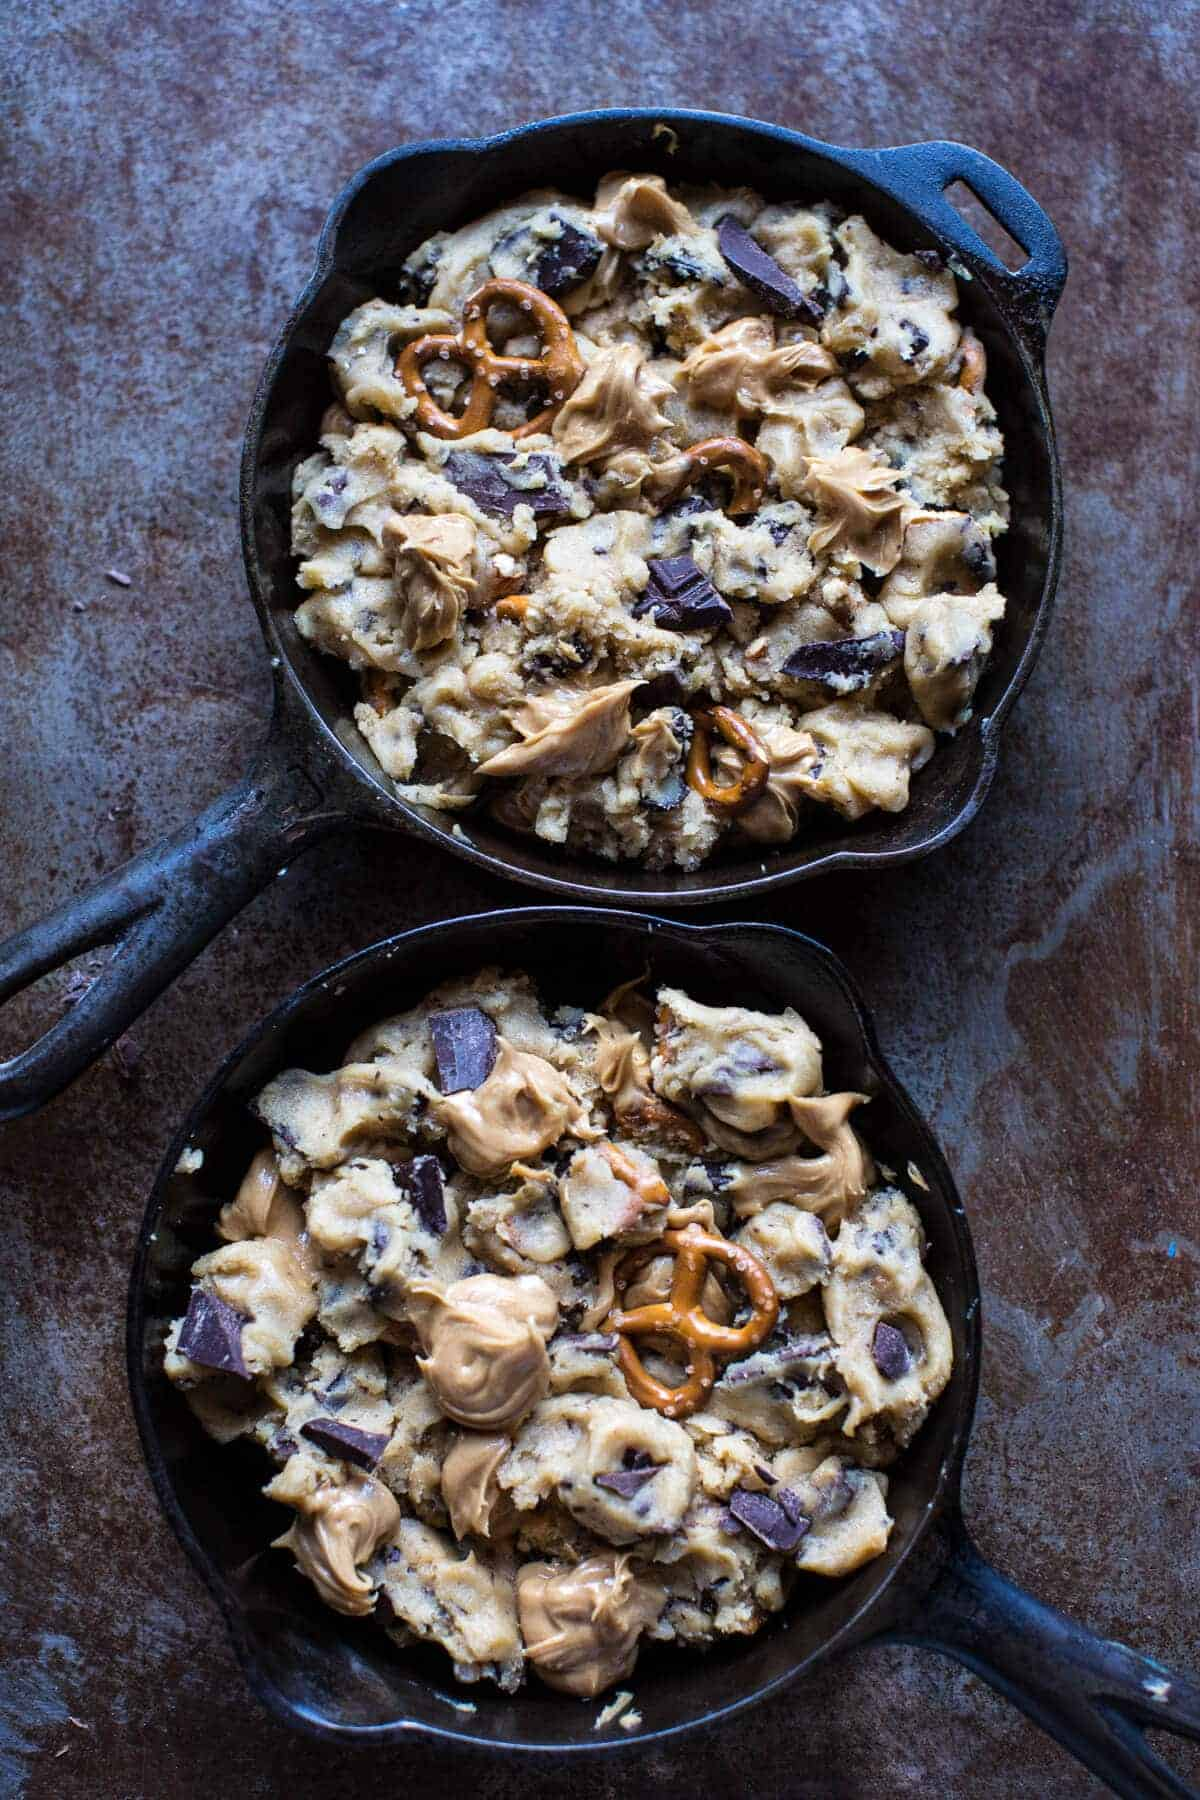 Skillet Baked Candy Bar Stuffed Double Cookie Recipes — Dishmaps